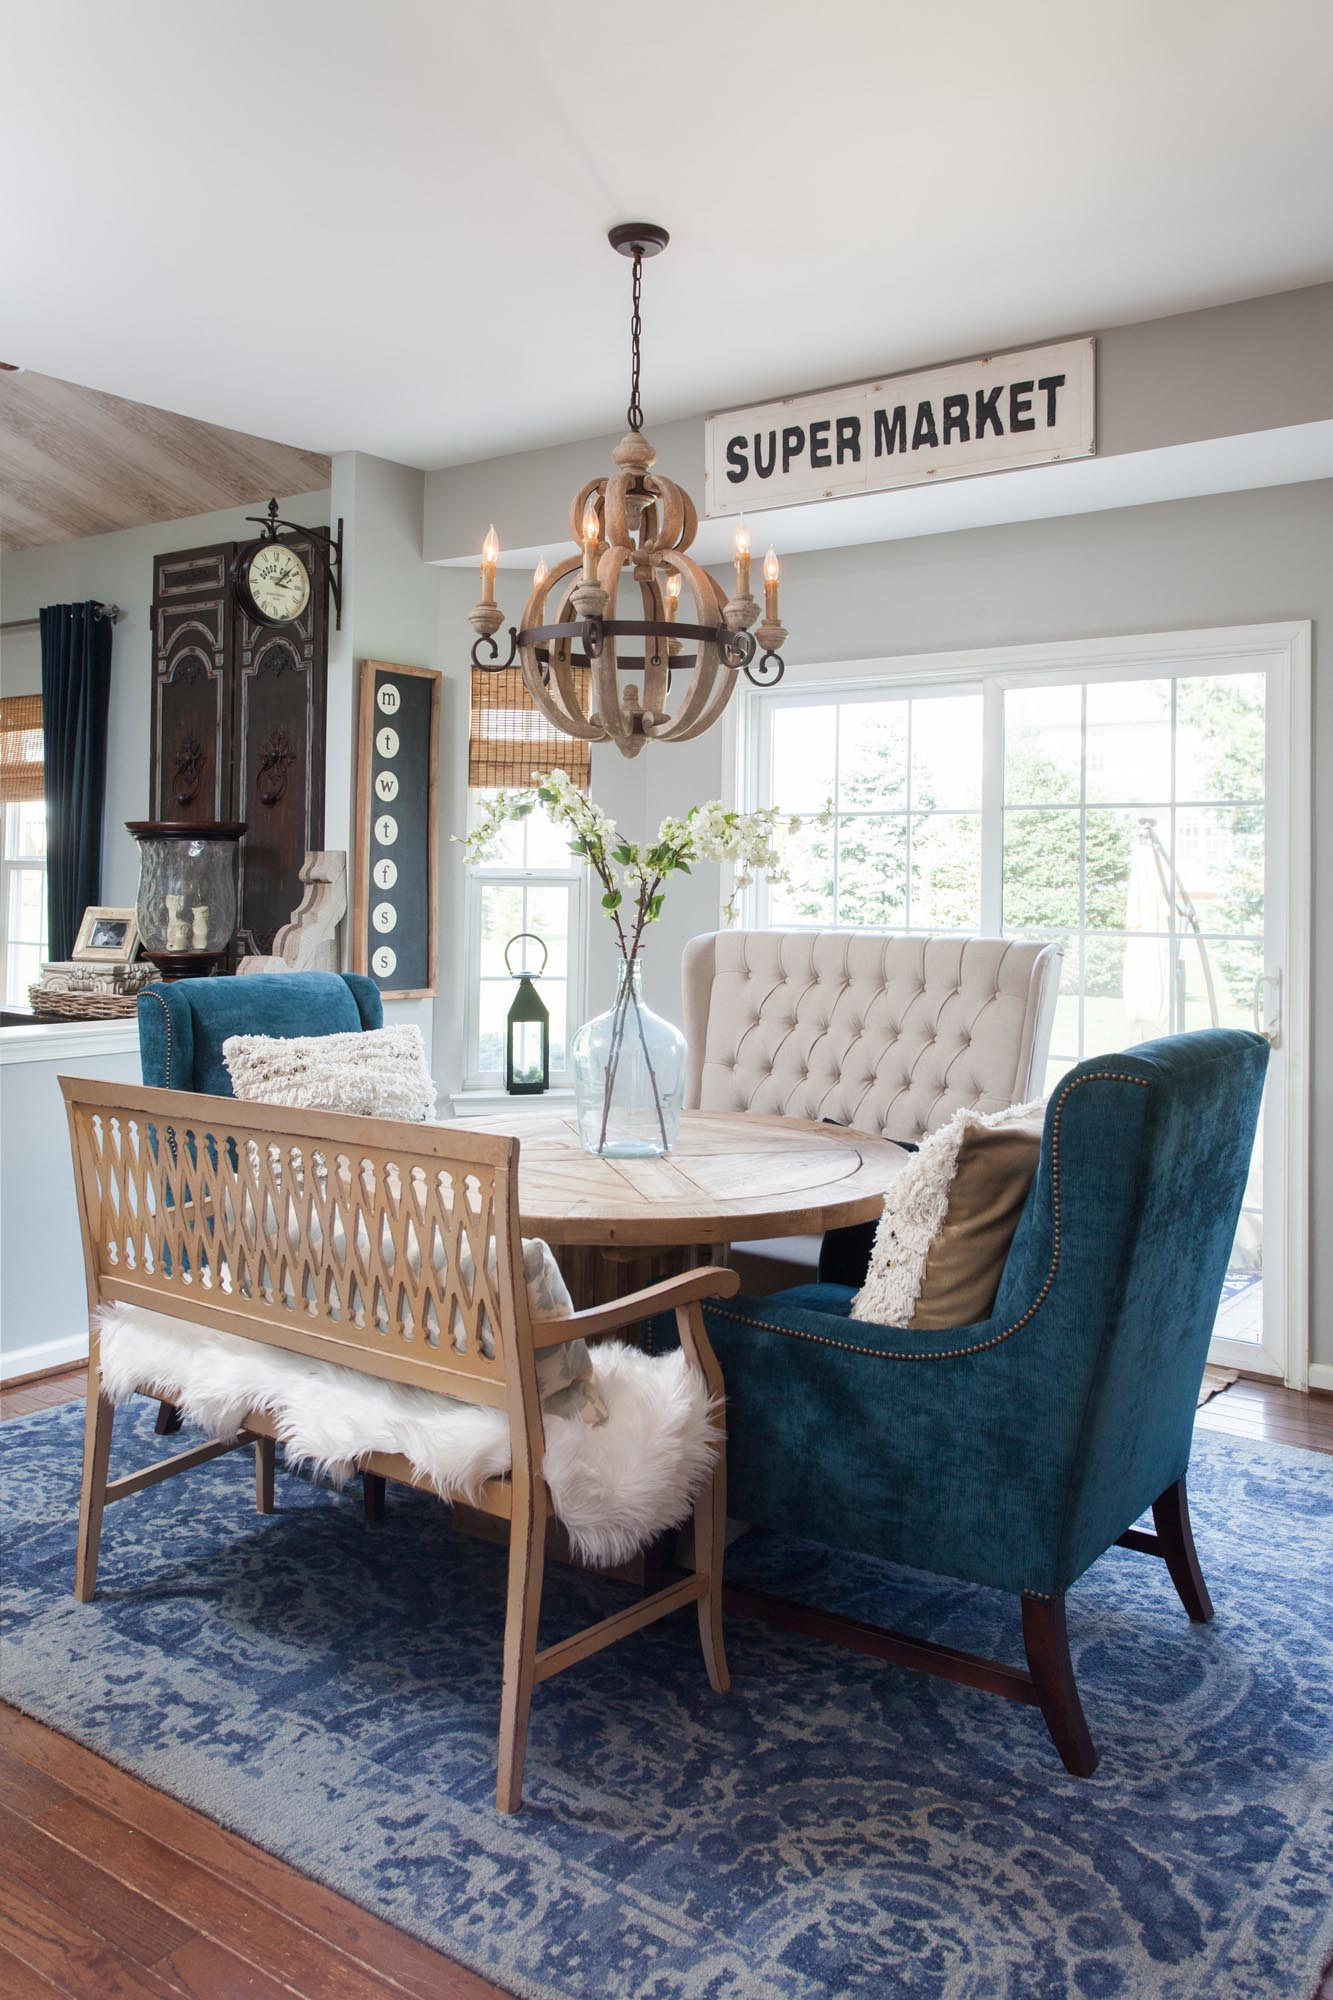 The Best Benches | Kelley Price Interiors.jpg